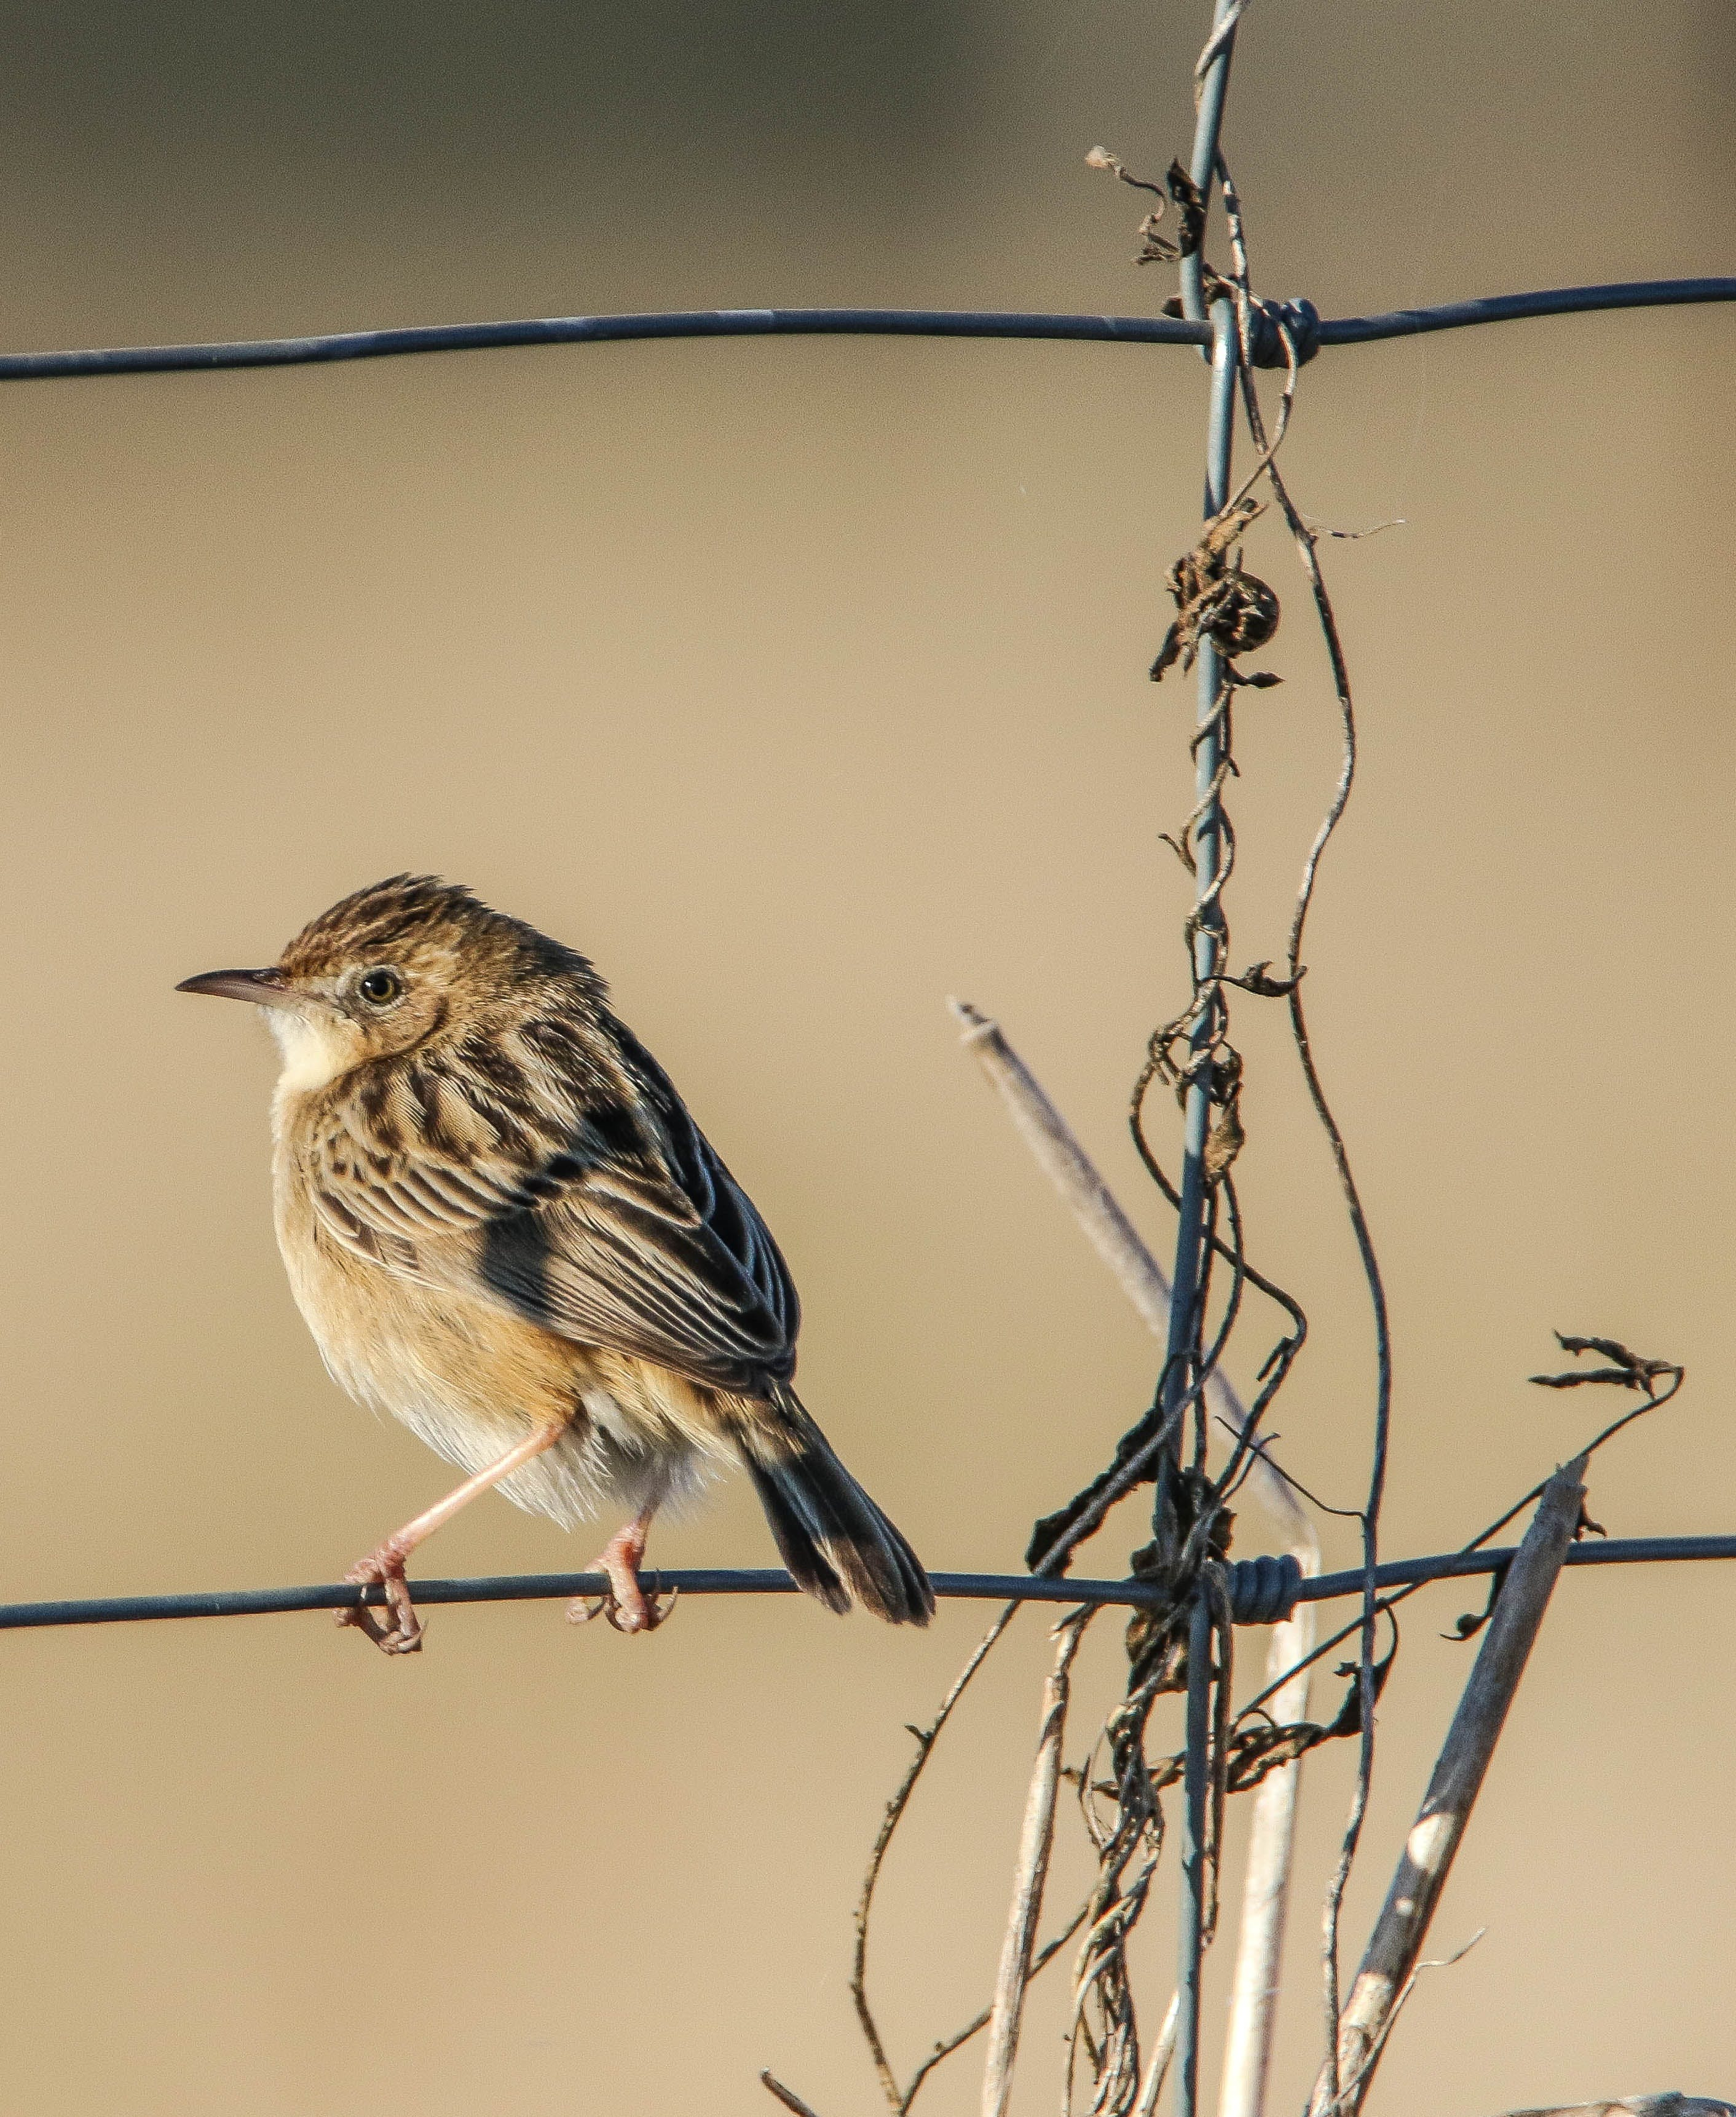 Brown Sparrow Perching on Hog Wire Fence